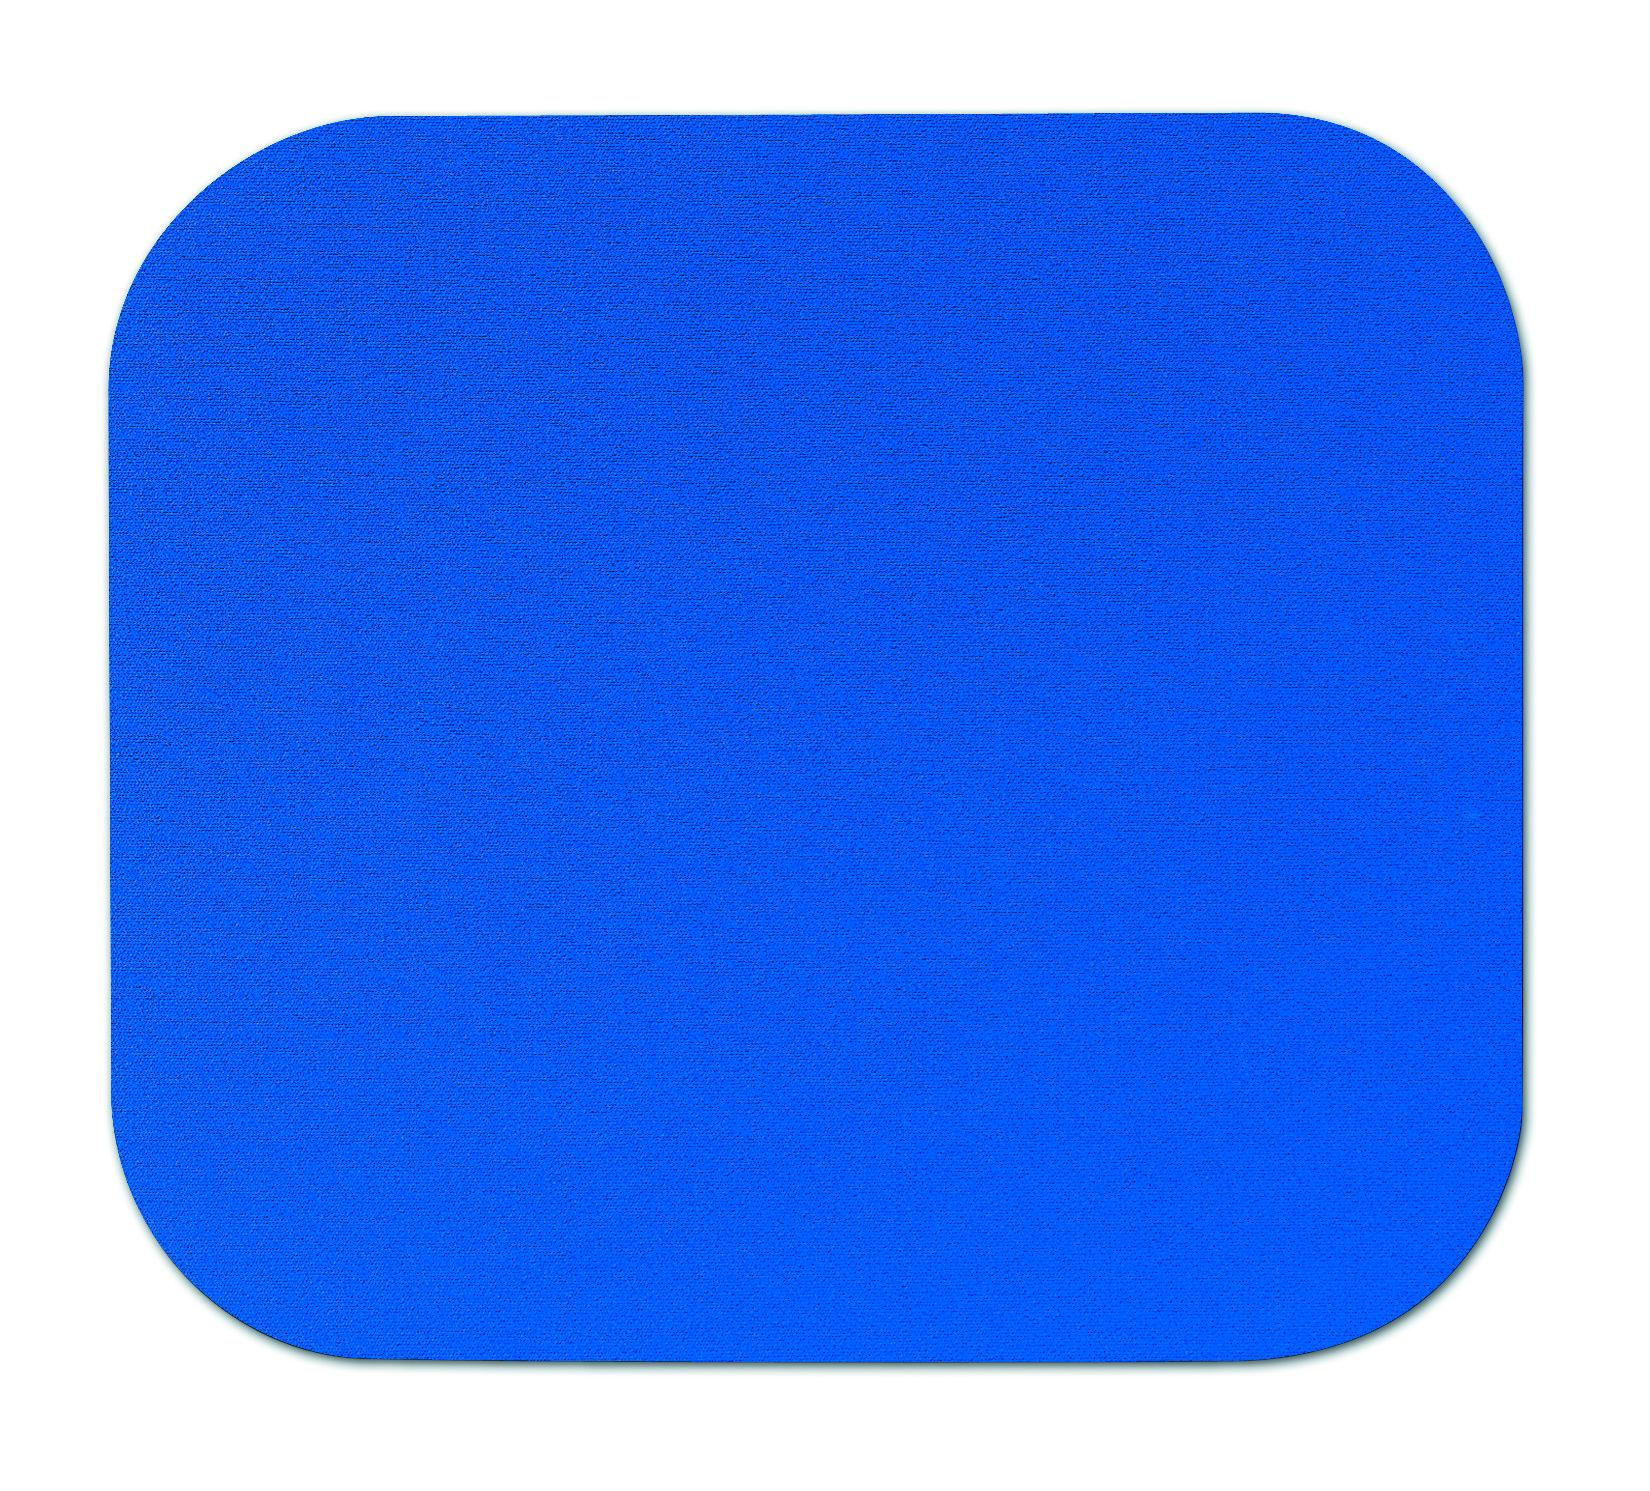 FELLOWES 58021 MOUSE PAD BLUE